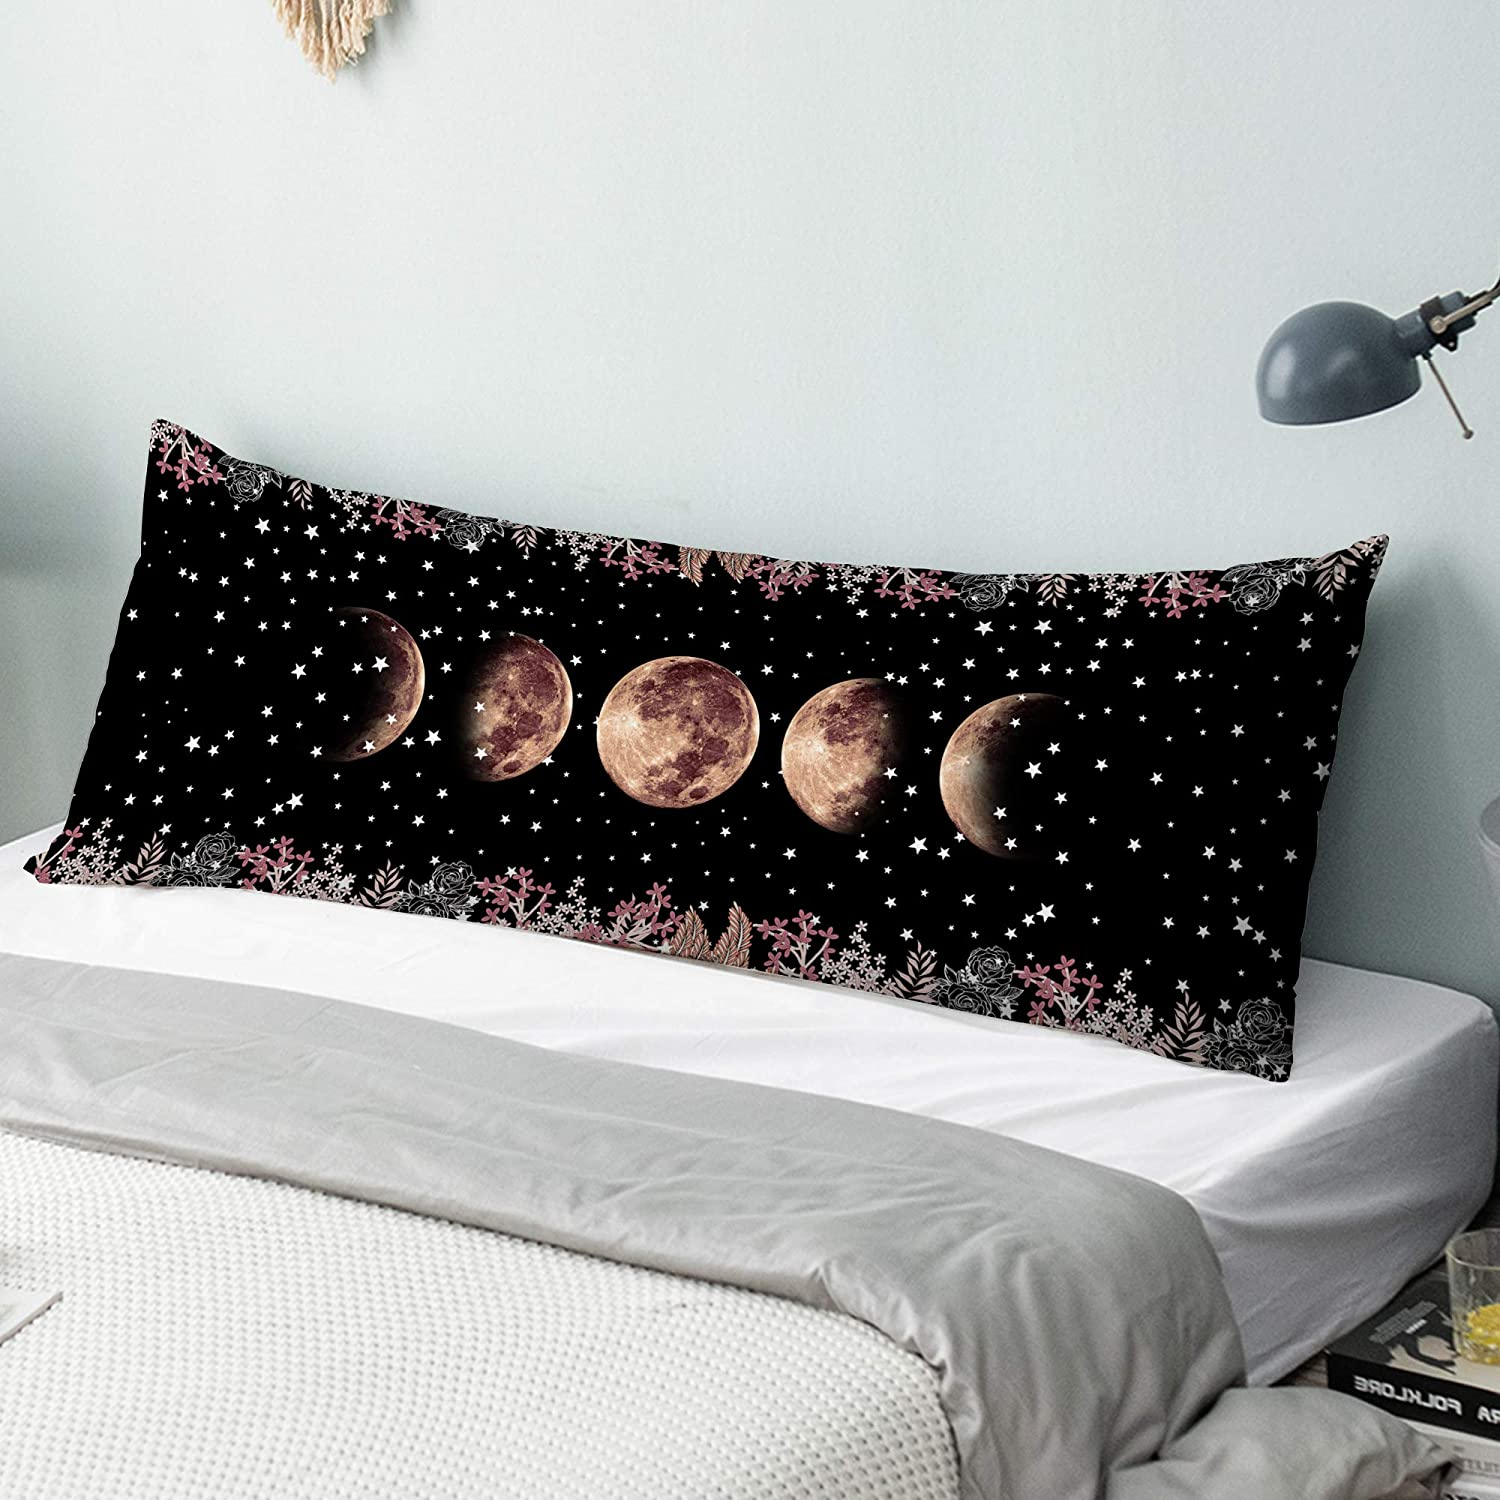 Body Pillow Cover, 20 x 54 inches Digital Printing Body Pillow Case with Hidden Zipper Closure, Ultra Soft Velvet Body Pillow Pillowcase for Hair and Skin, Moon Phase Moonlit